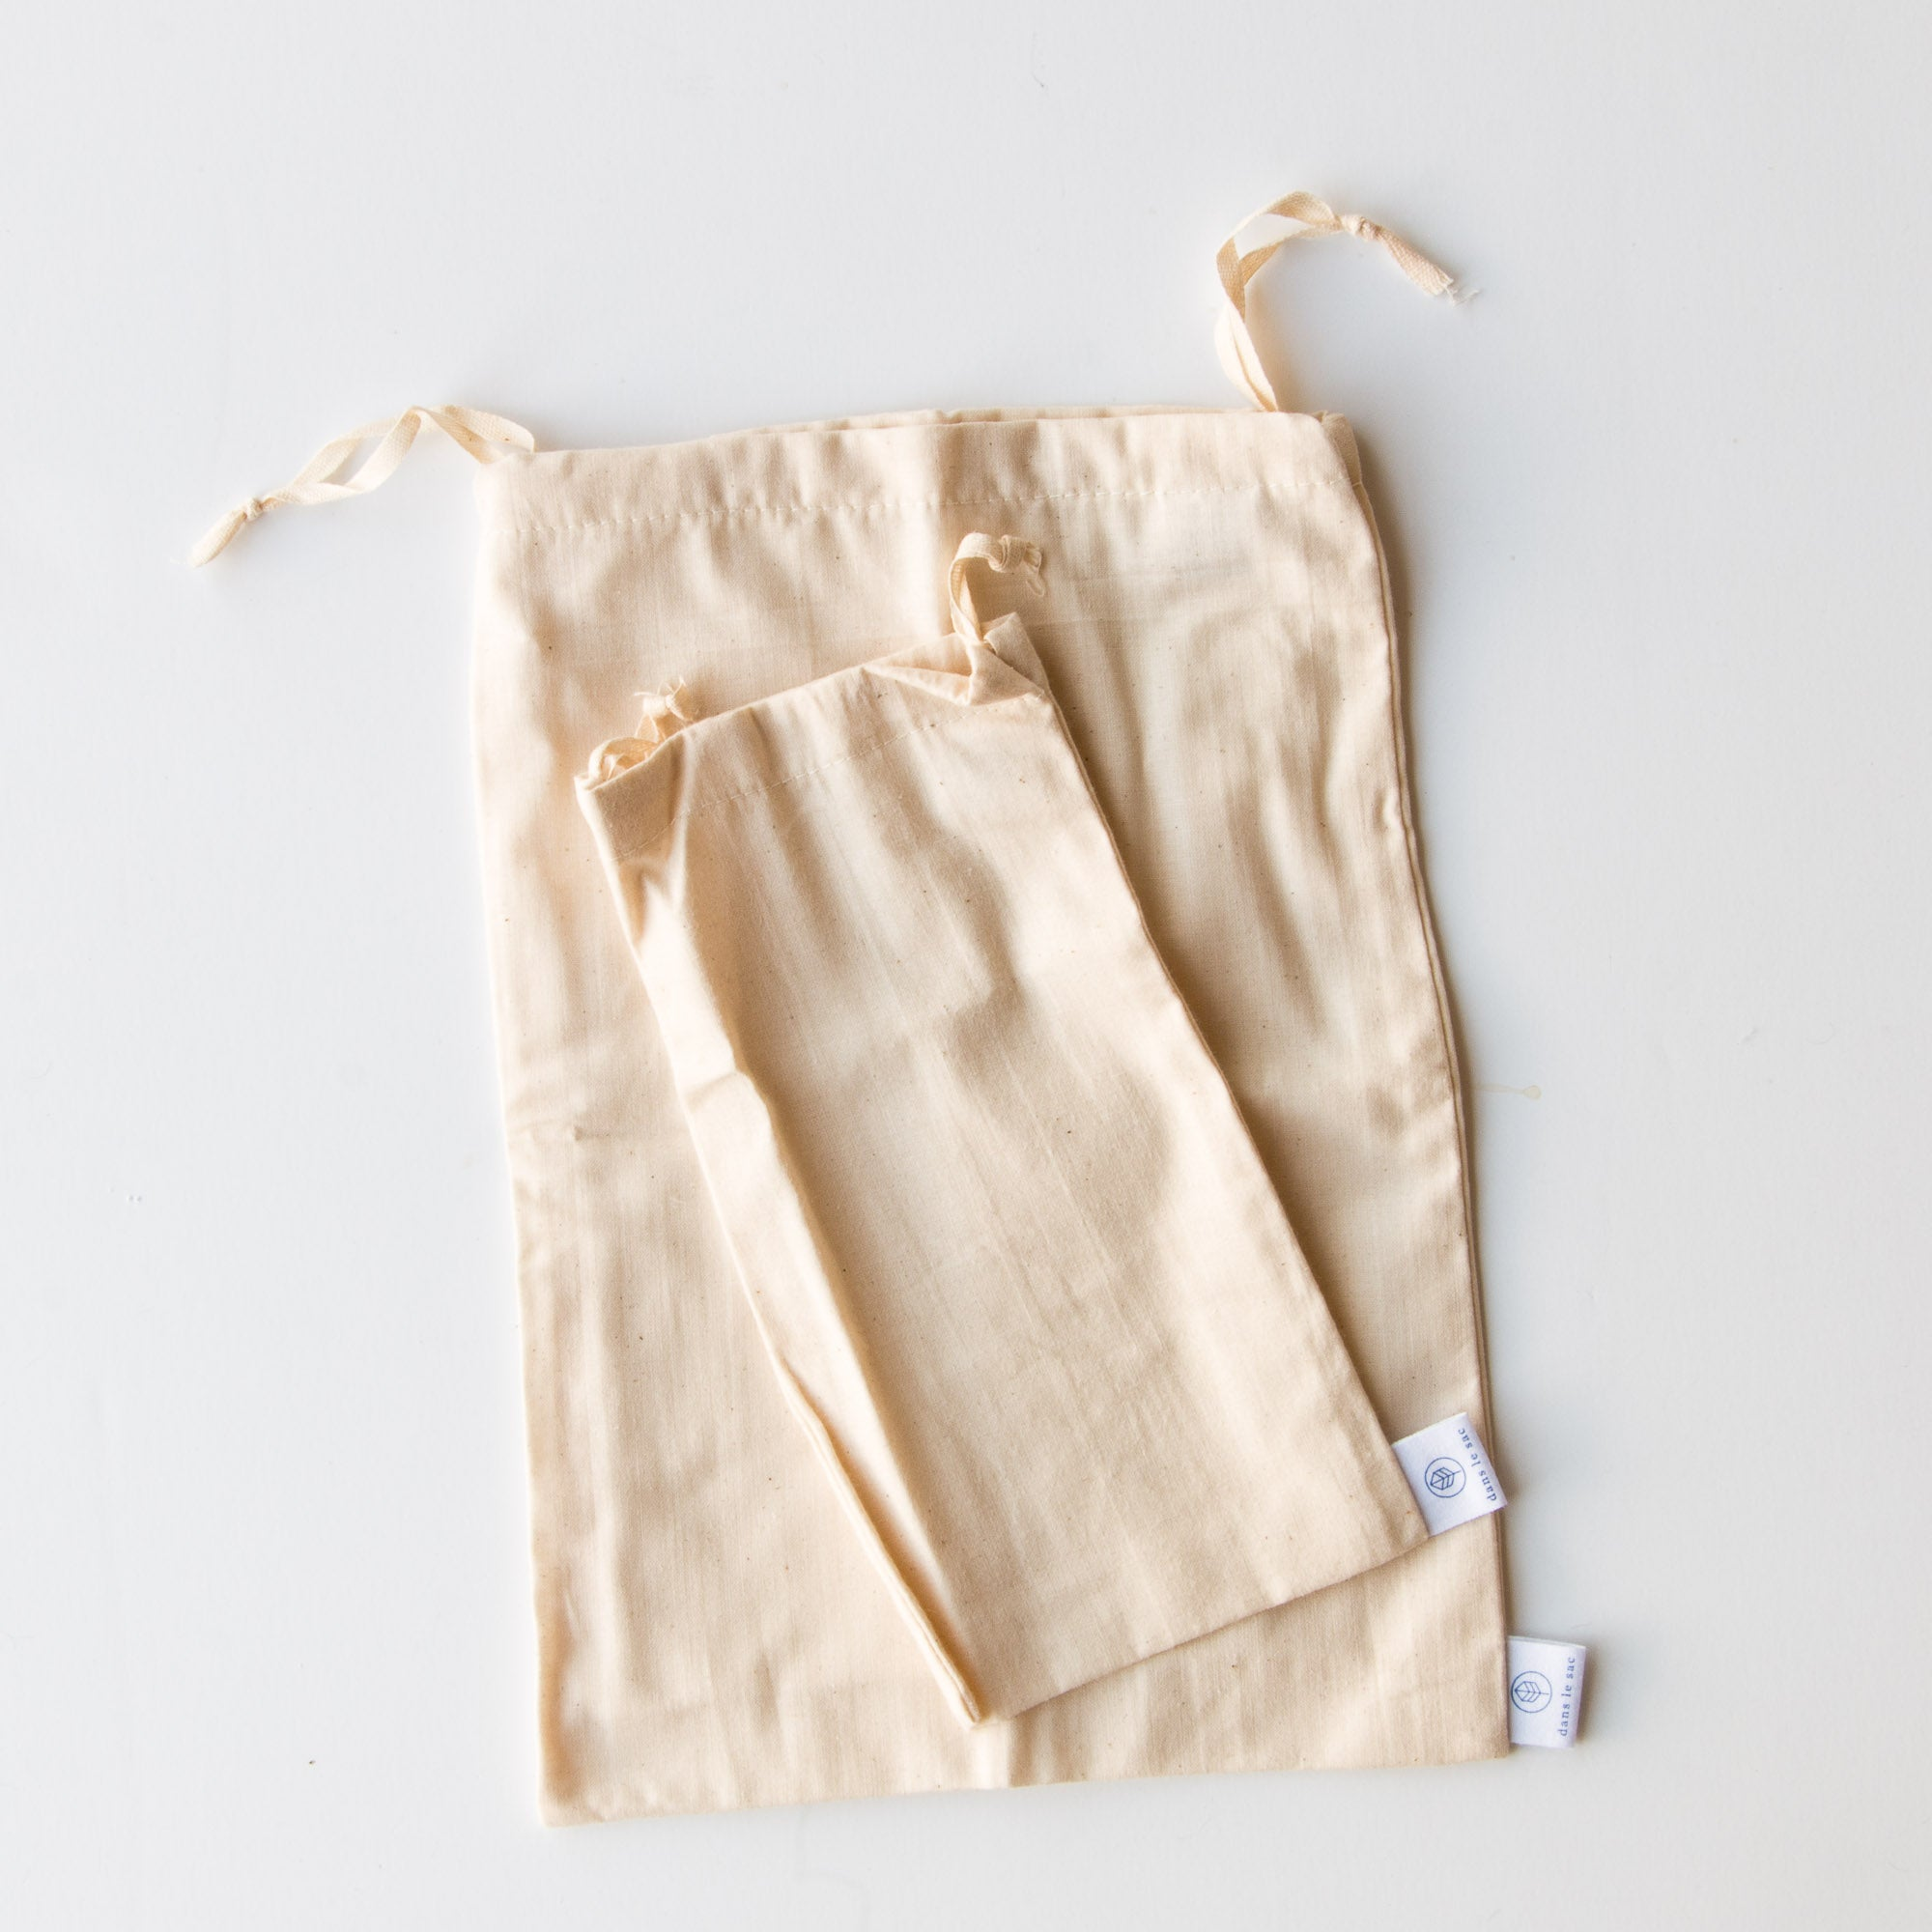 Large Bulk Bag - 100% Cotton Reusable Produce & Bulk Bags - Sold by Chic & Basta